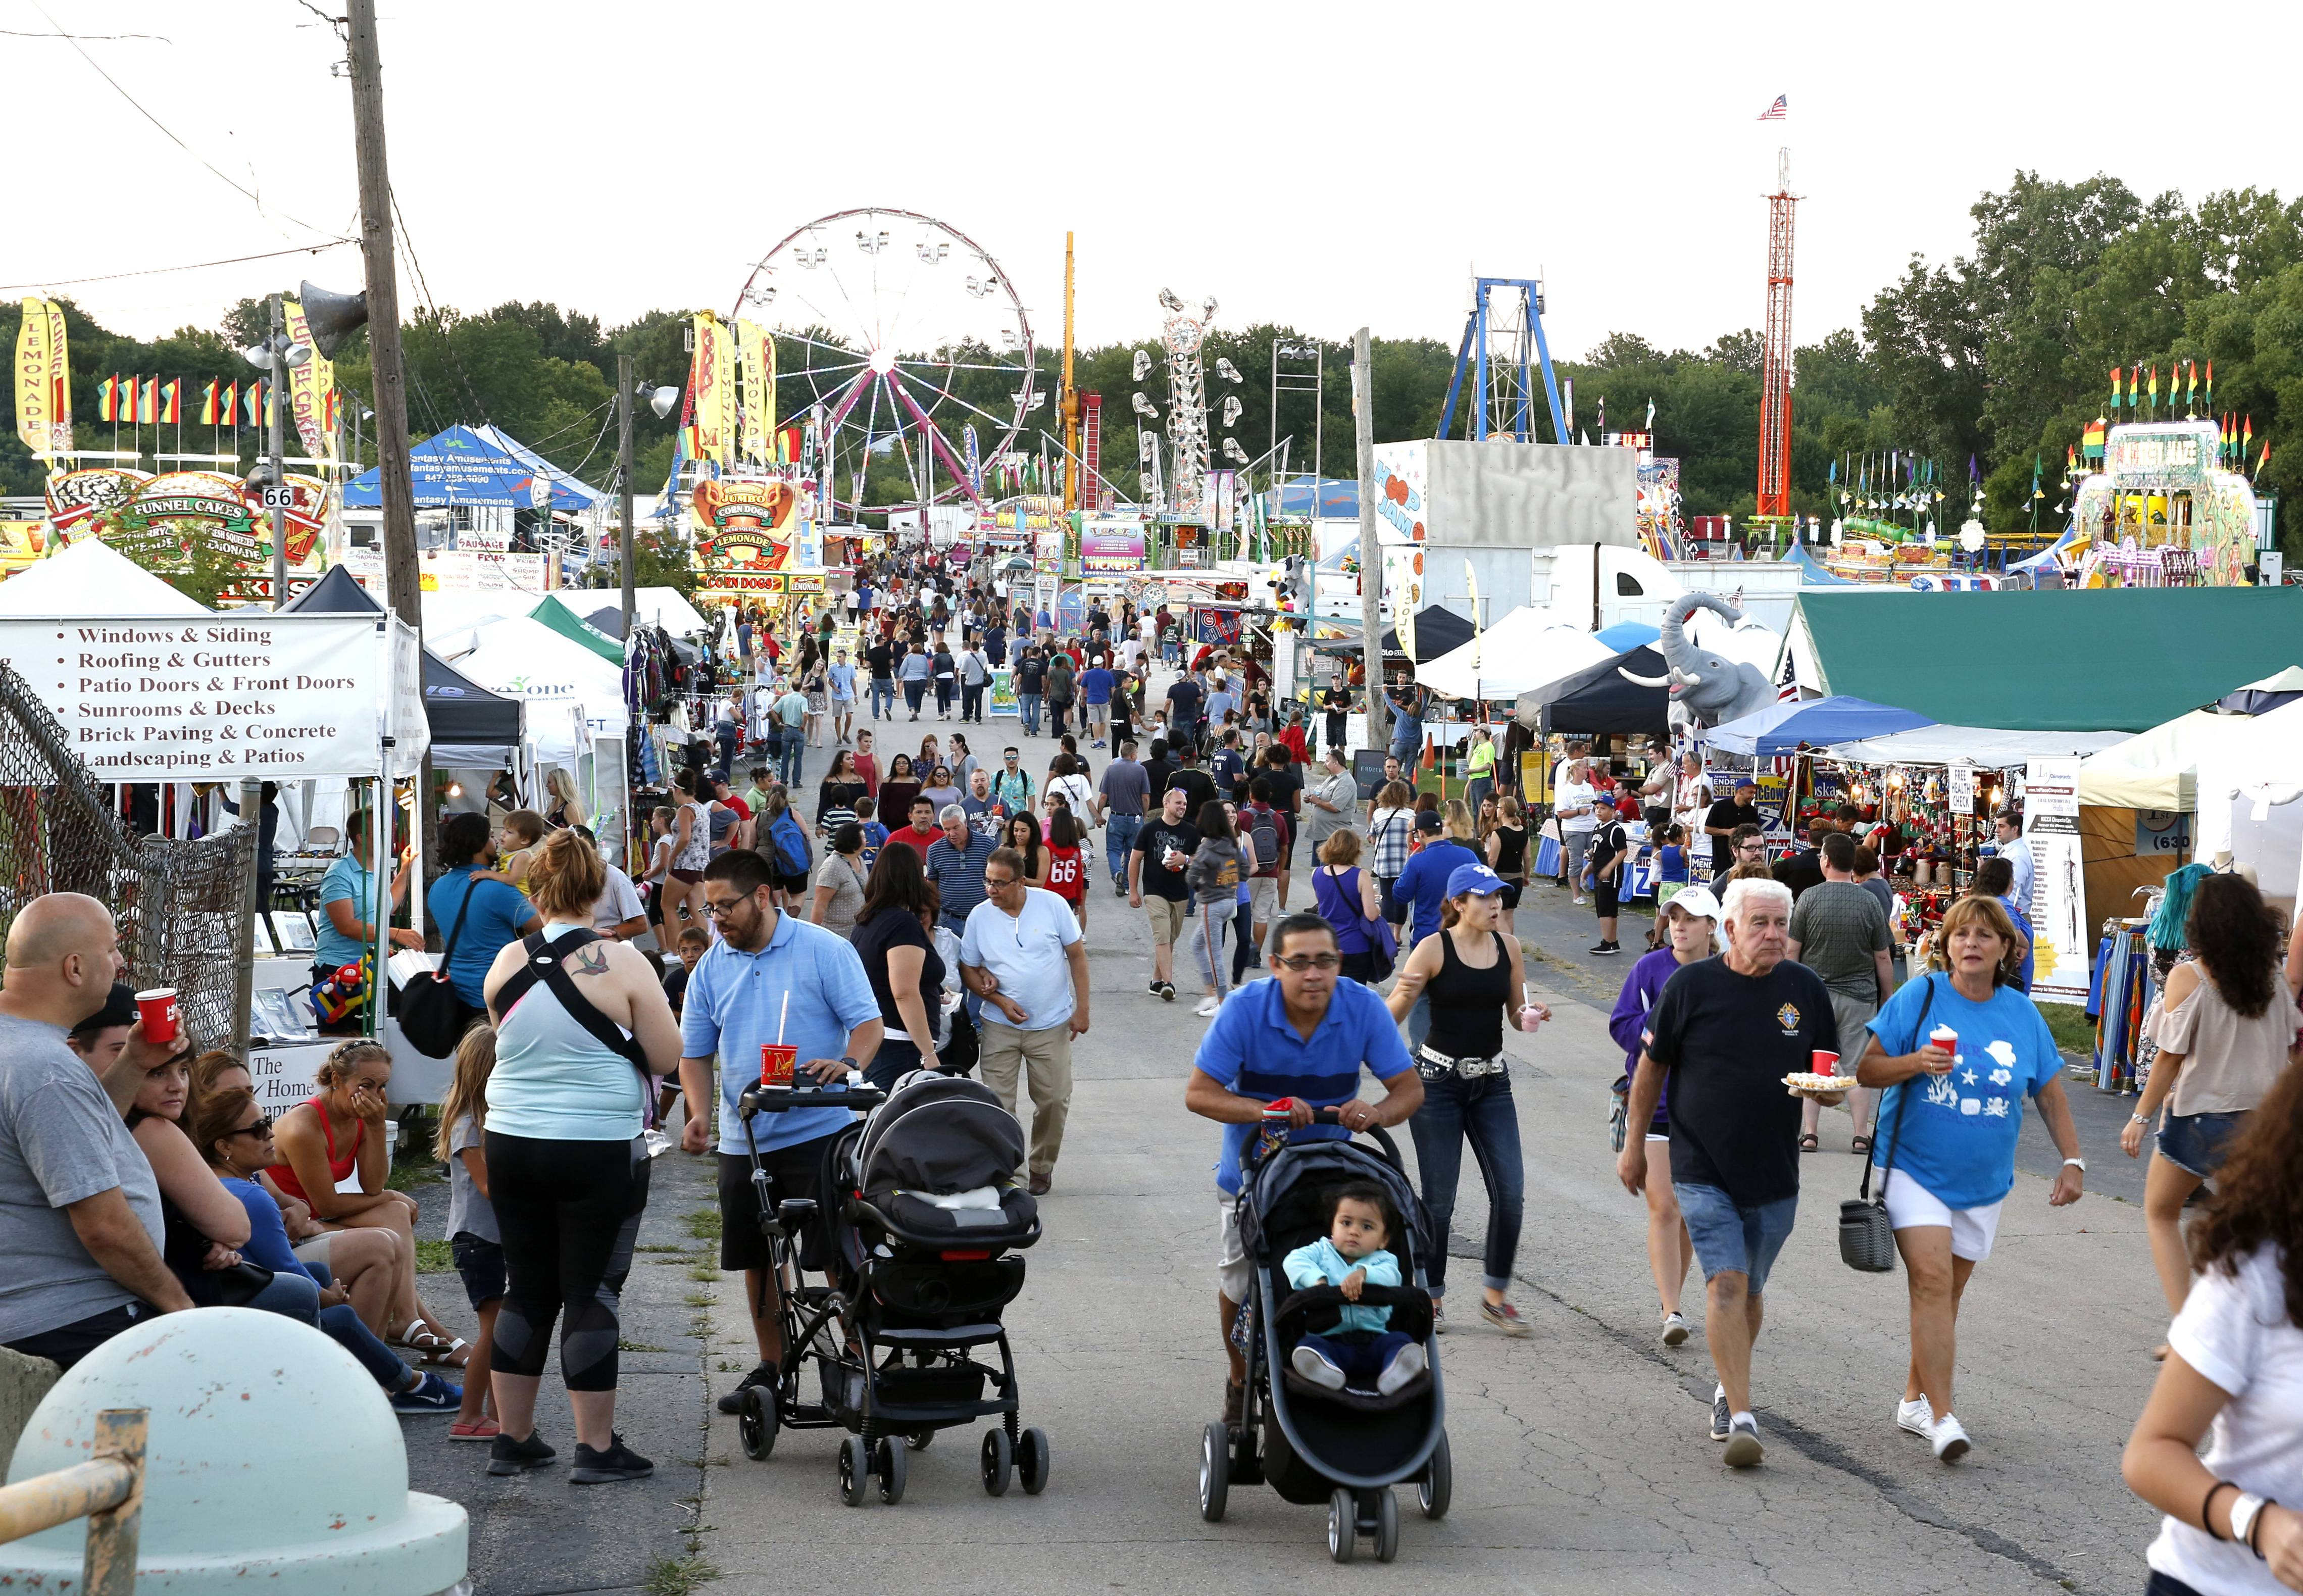 Rides, vendors and exhibits line the midway at last year's DuPage County Fair. Four local counties — DuPage, Kane, Lake and McHenry — have county fairs starting in July.